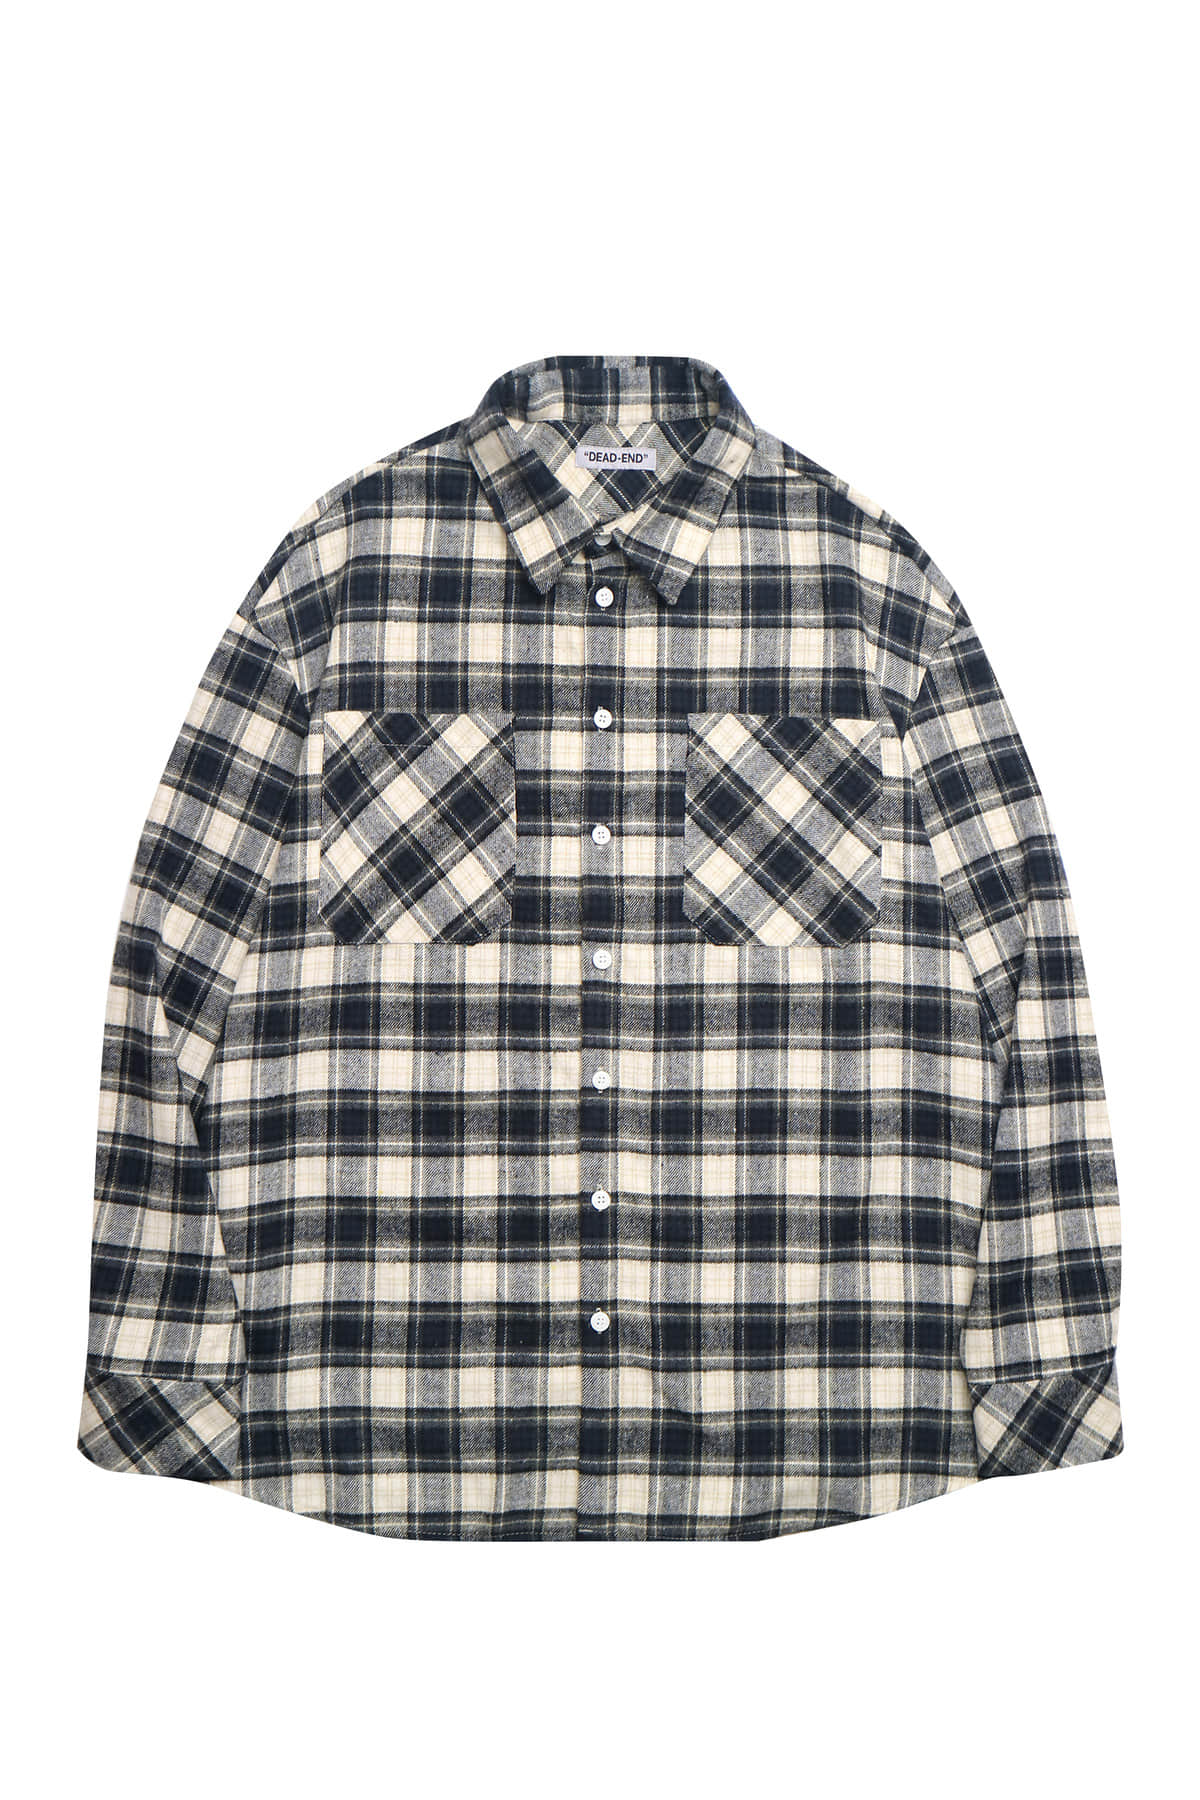 NAVY FLANNEL SHIRTS